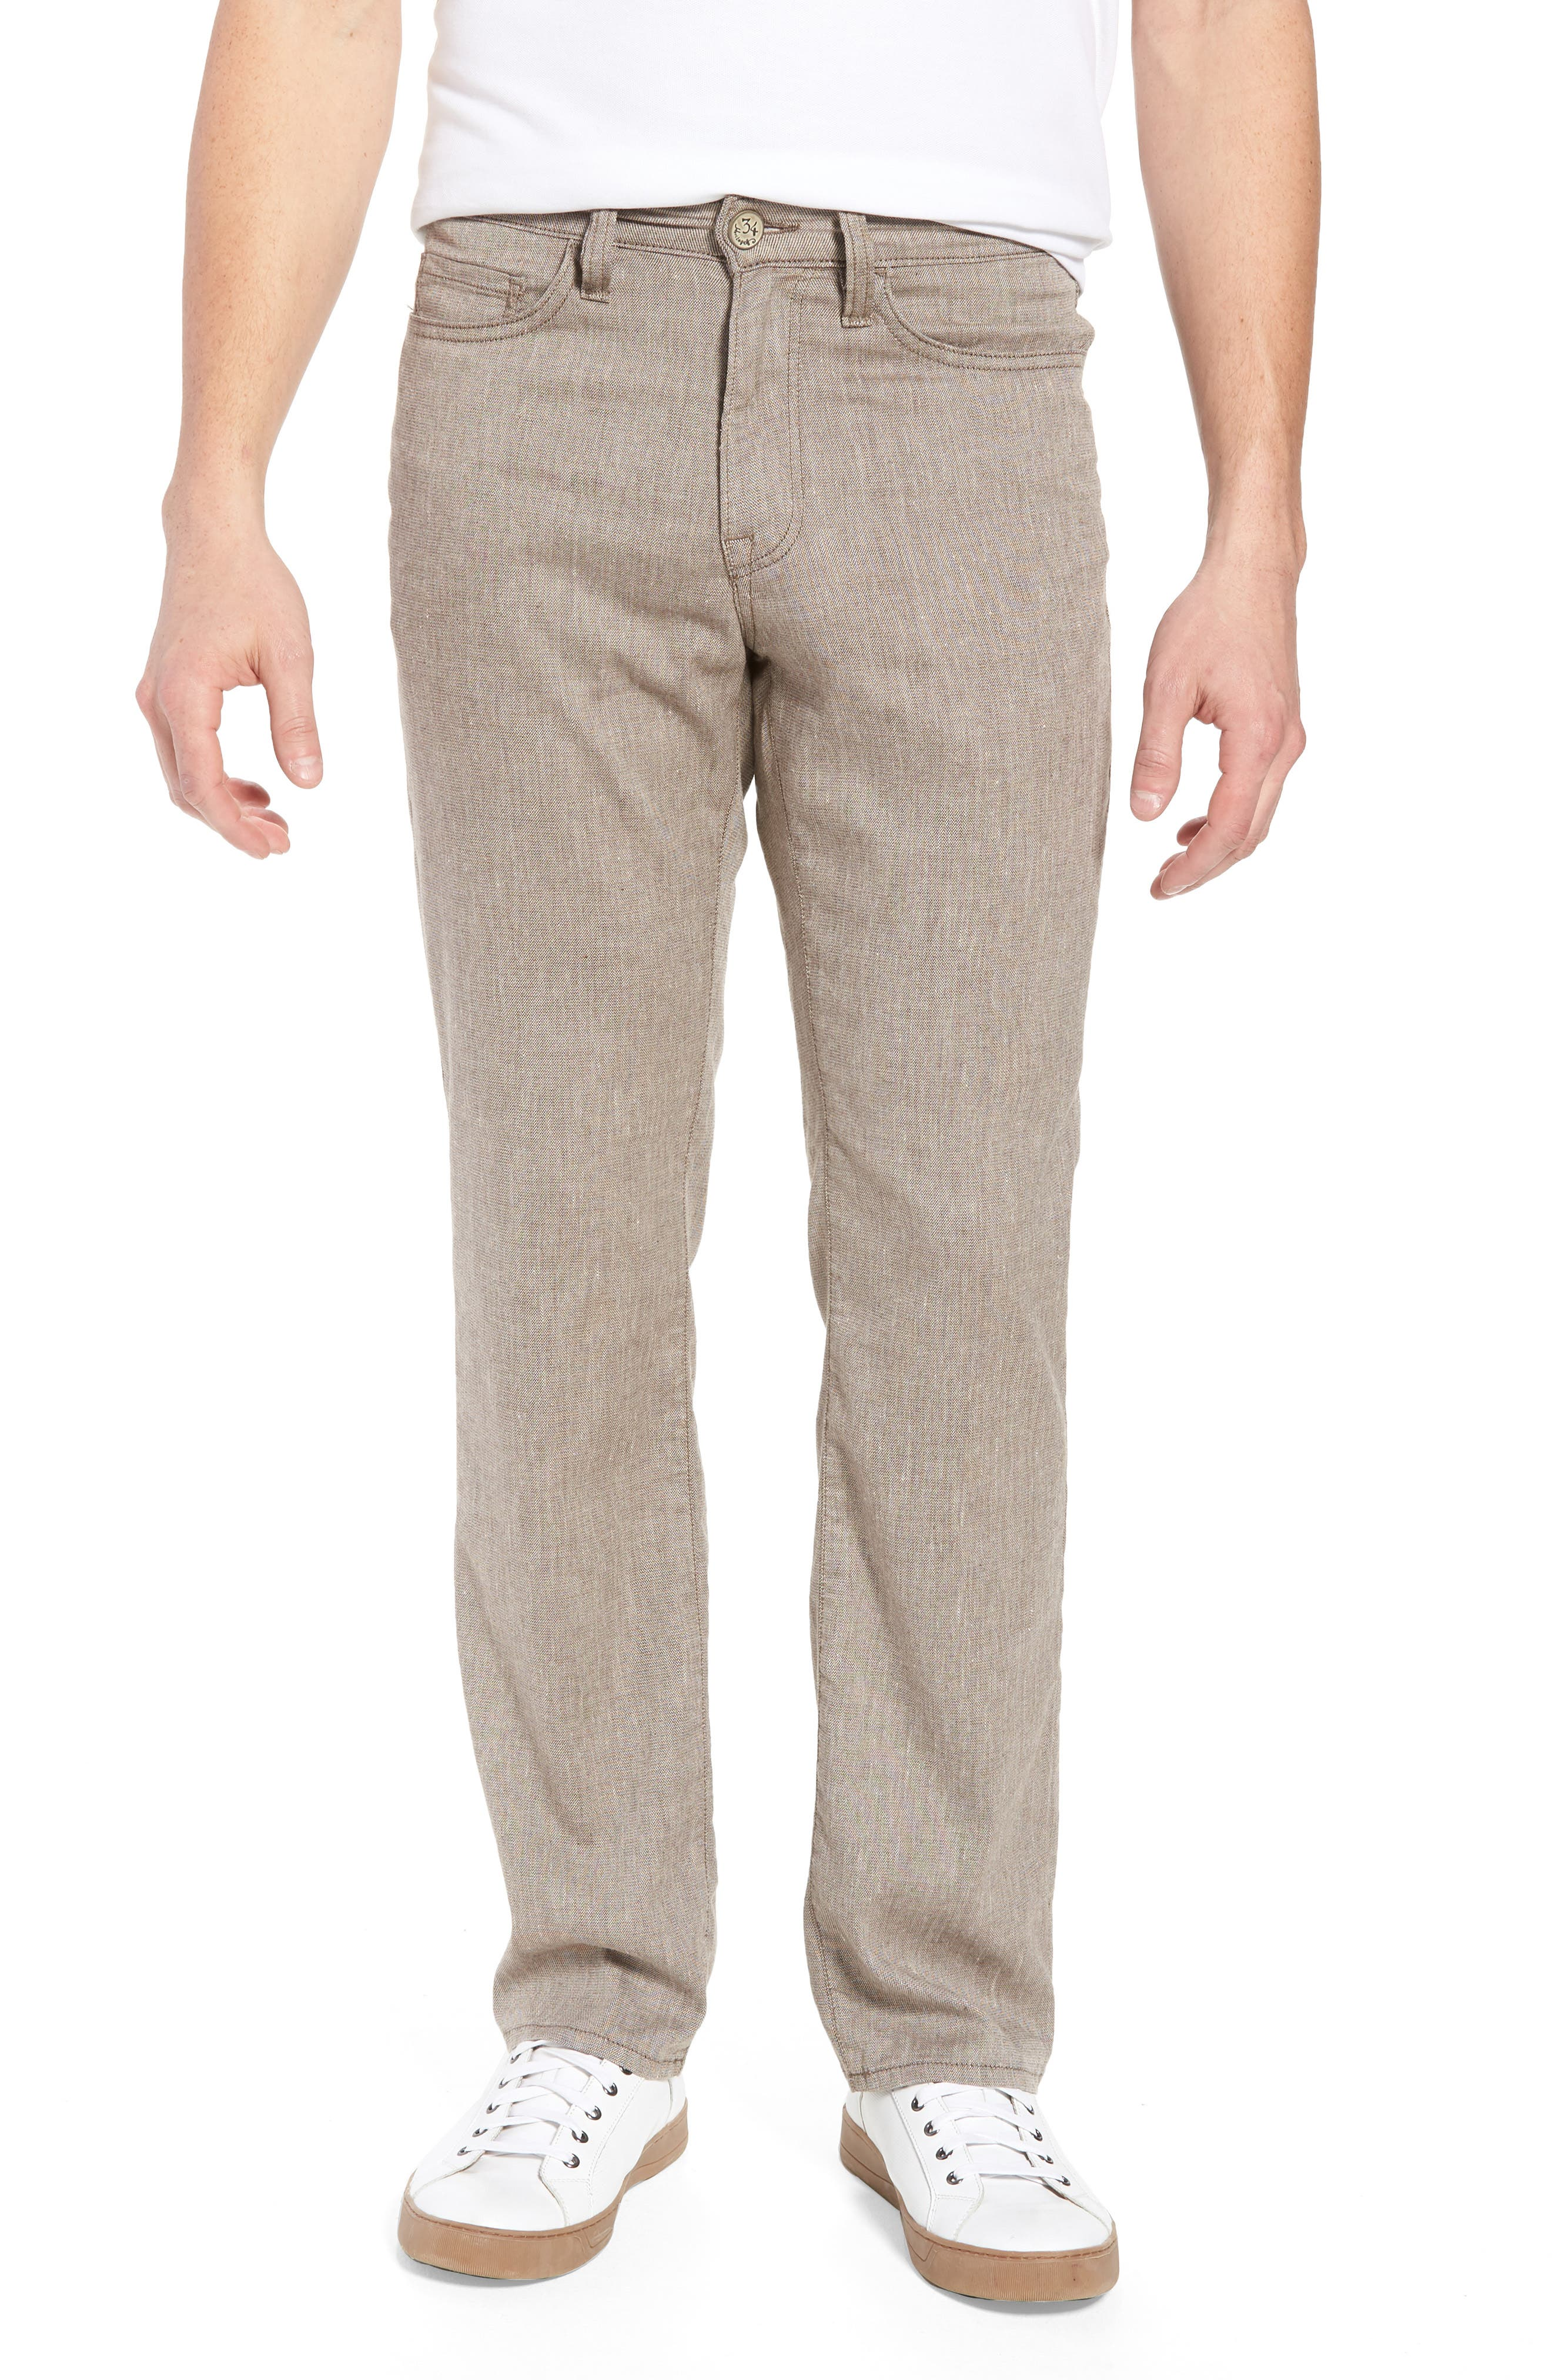 Charisma Relaxed Fit Pants,                             Main thumbnail 1, color,                             200